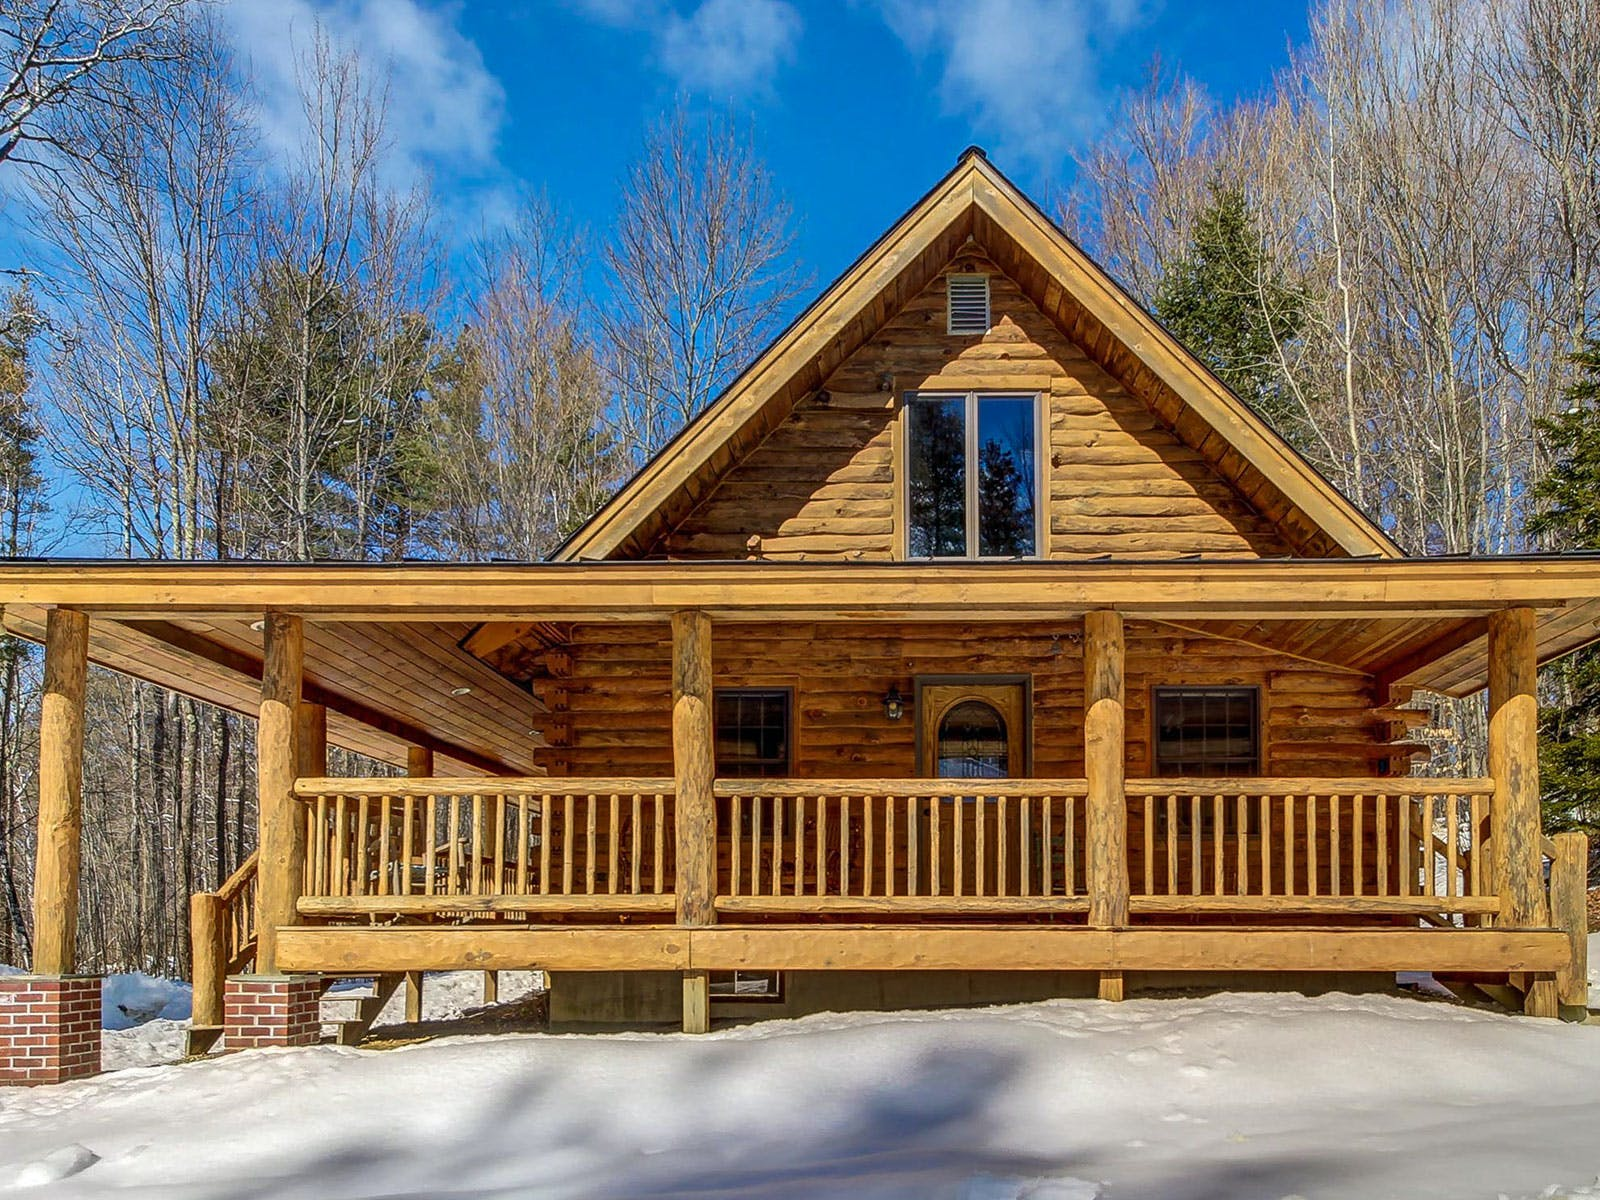 A cabin with a wraparound porch in Stowe, Vermont